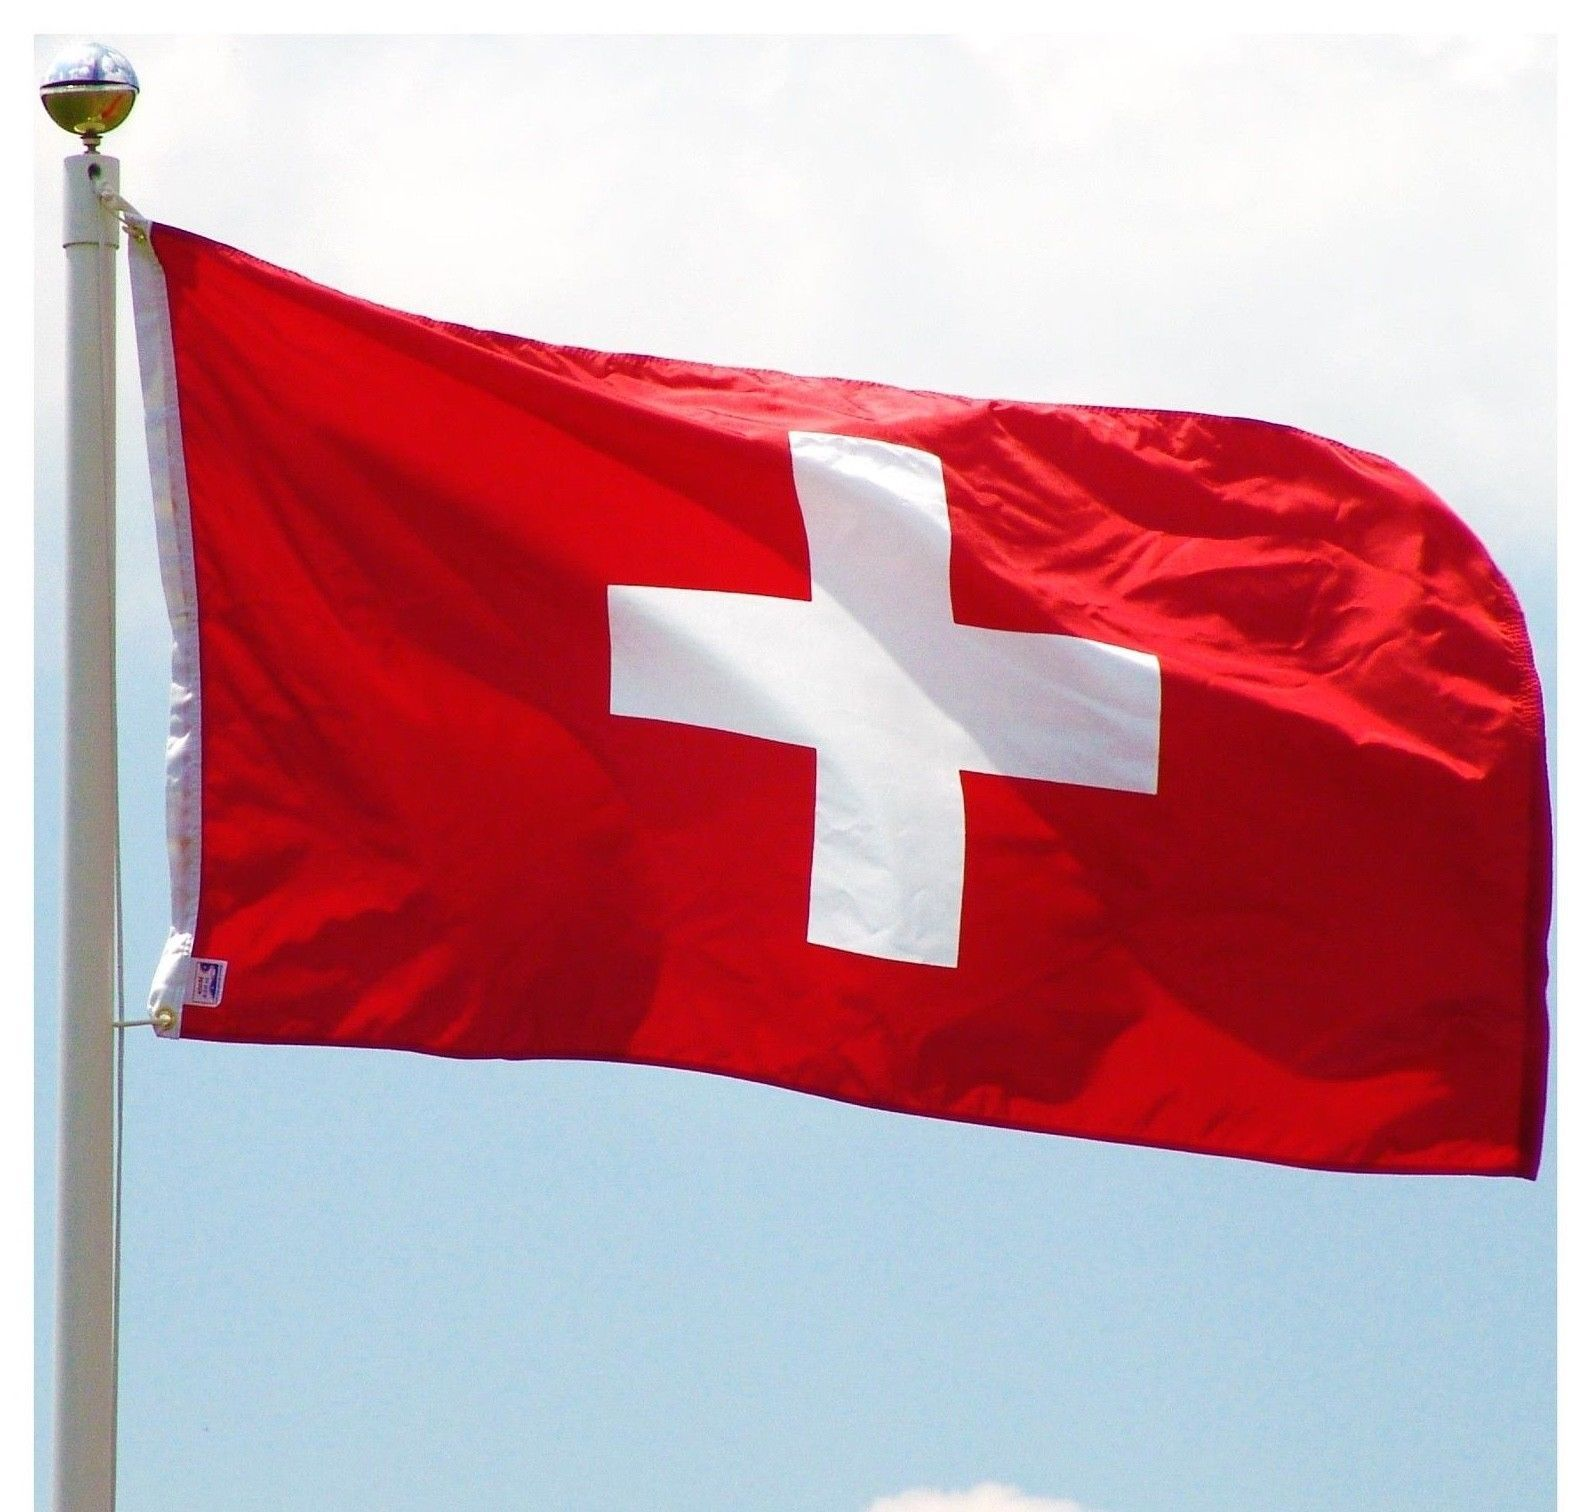 Giant Switzerland Swiss Suisse Euro 2020 National Party Flag Speedy Delivery Flag Switzerland Flag Flags Of The World